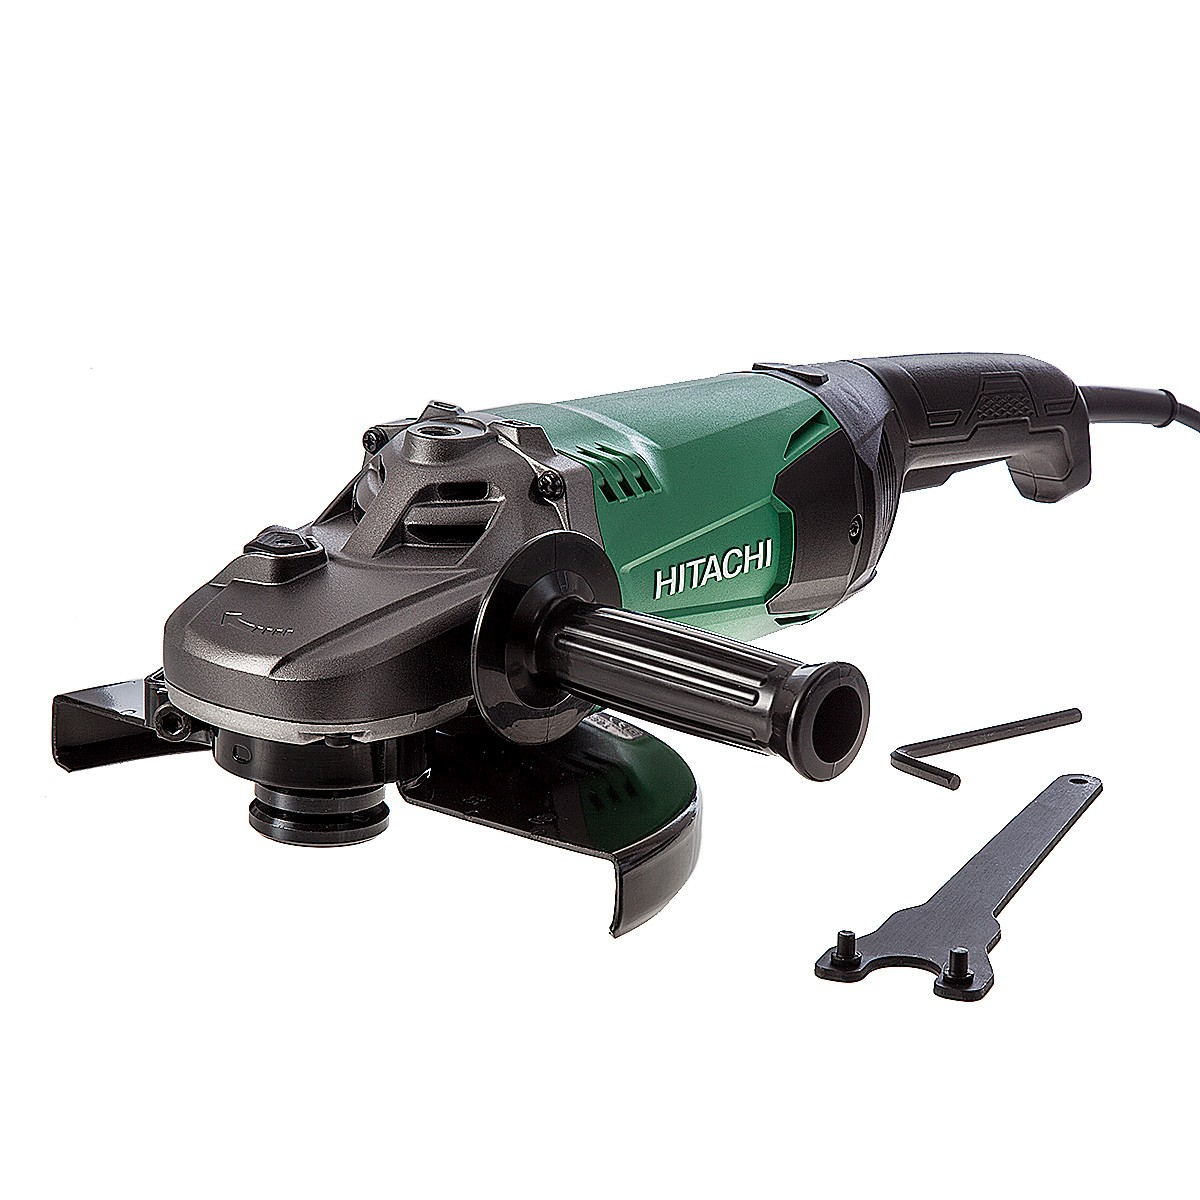 "Hitachi G23ST Disc 9"" / 230mm Angle Grinder 110v"